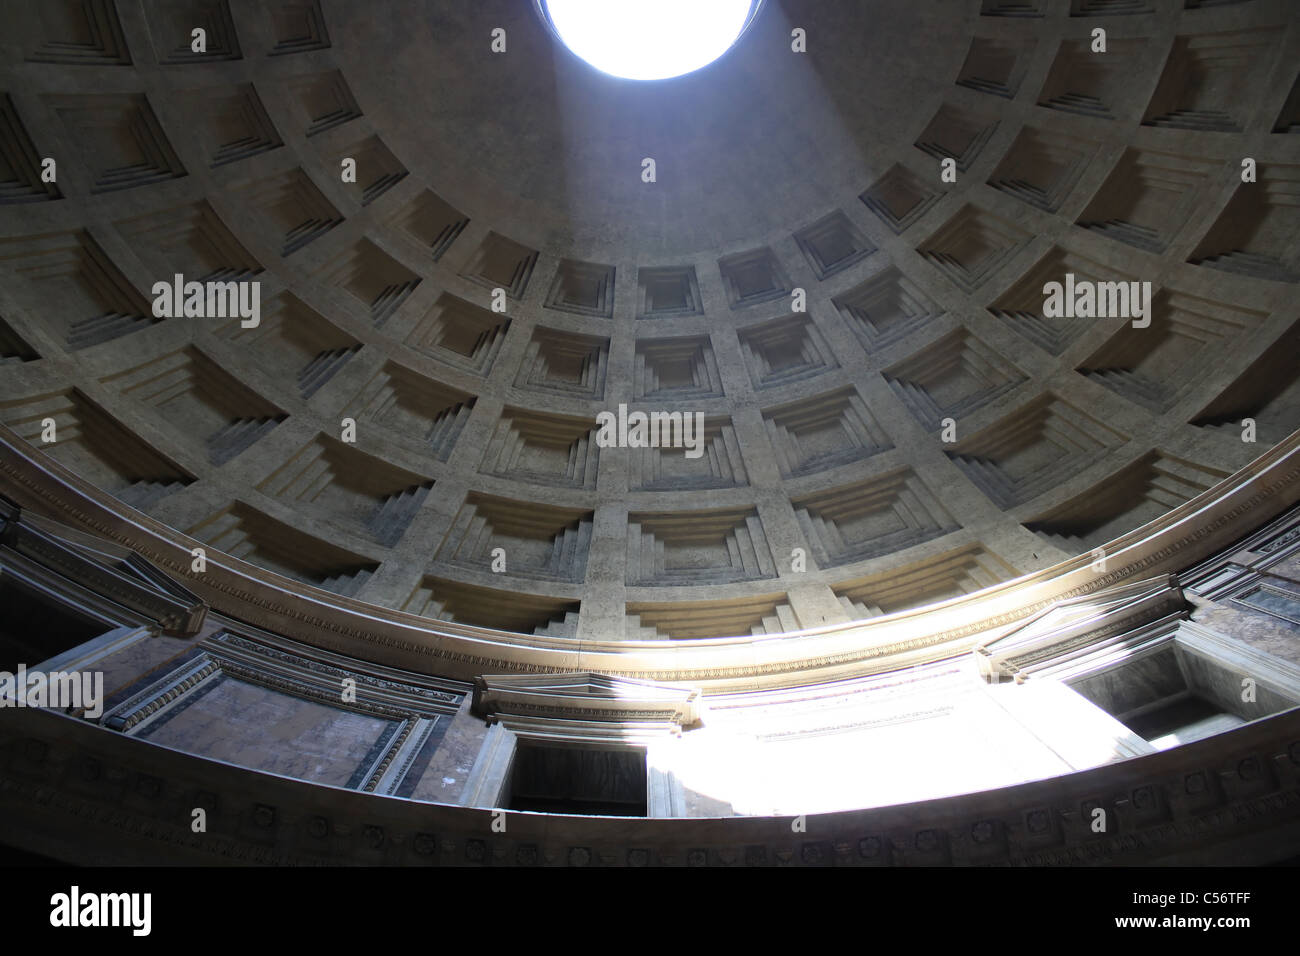 The Pantheon in Rome from, A beam of light falls through the hole in the hemispherical roof - Stock Image